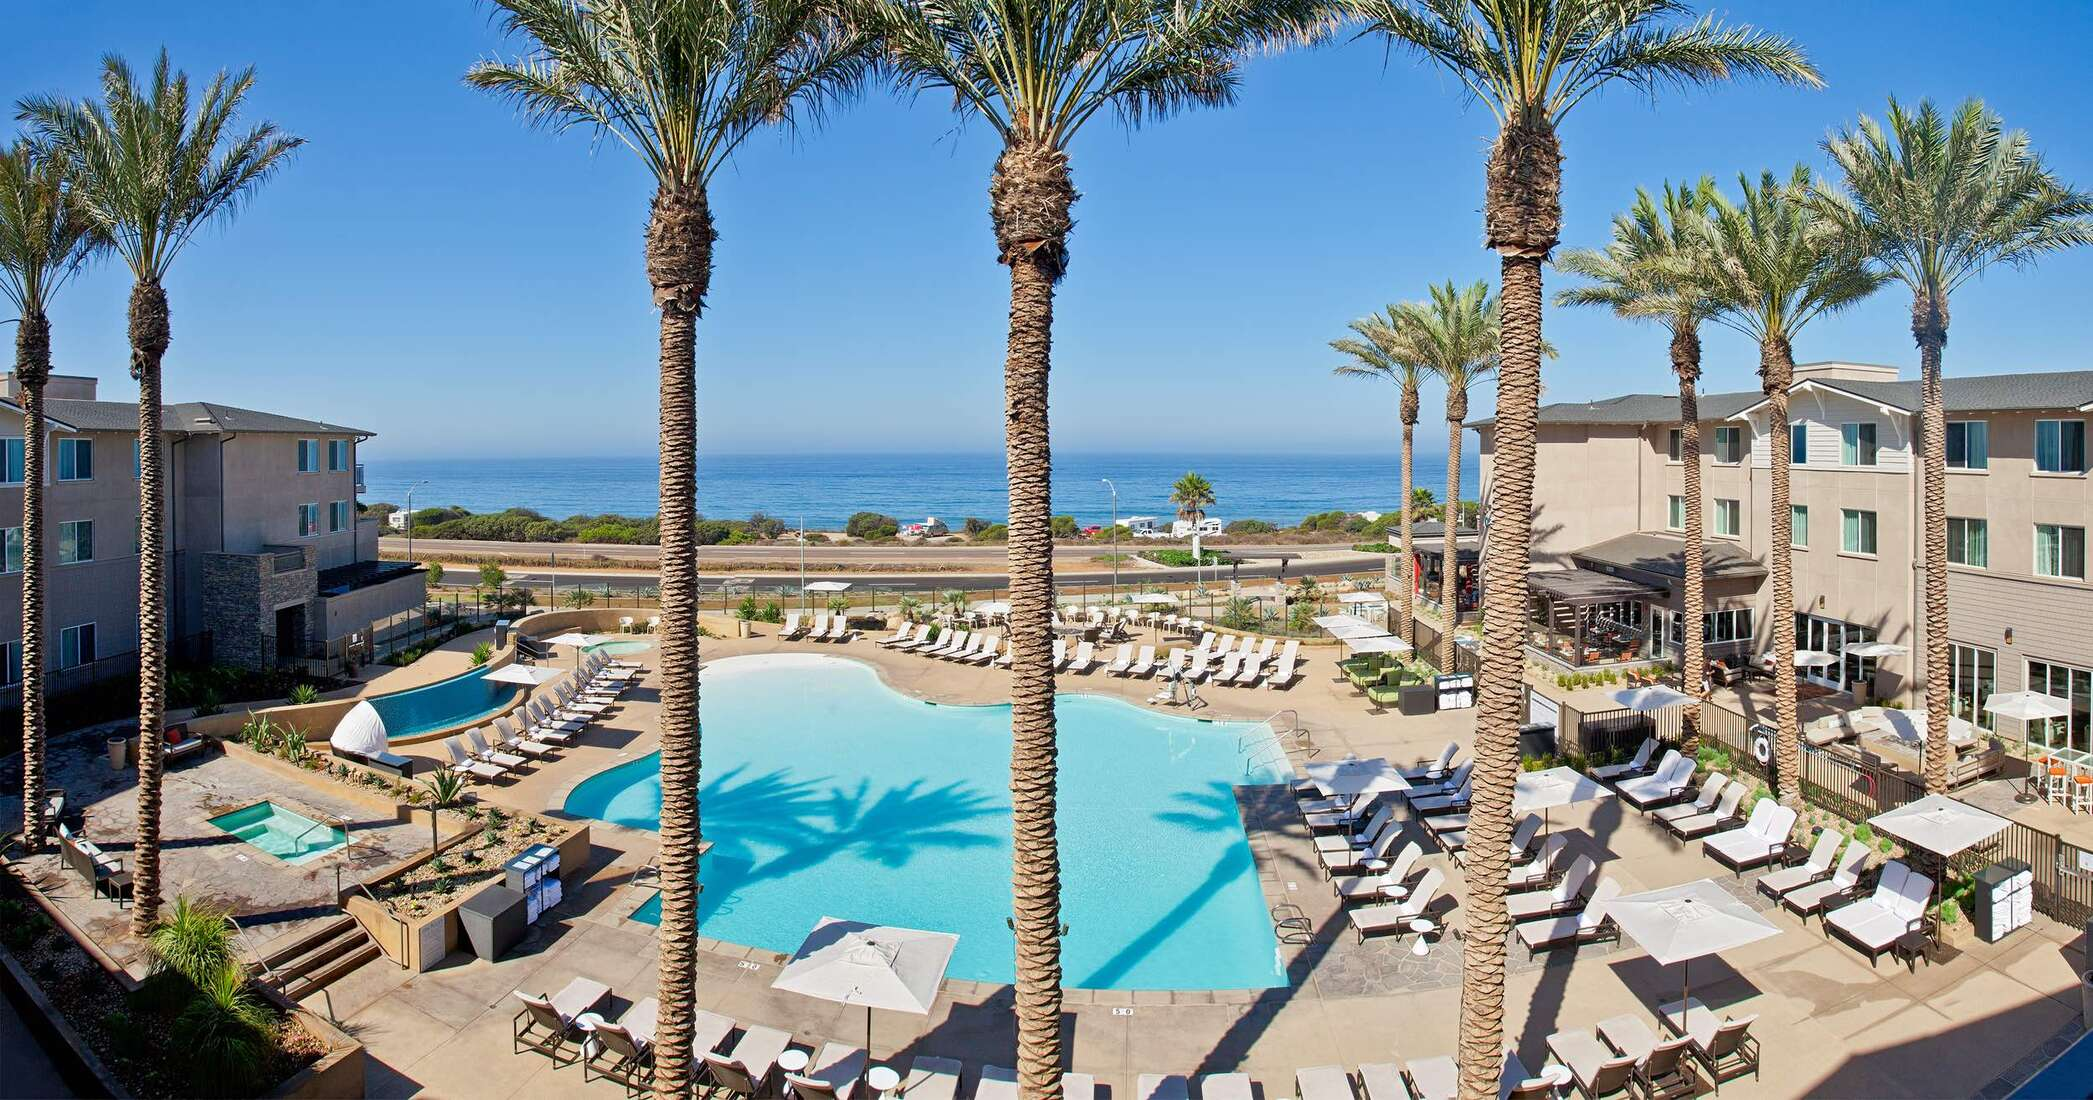 Breeders' Cup Experience accommodations Cape Rey Carlsbad Beach exterior